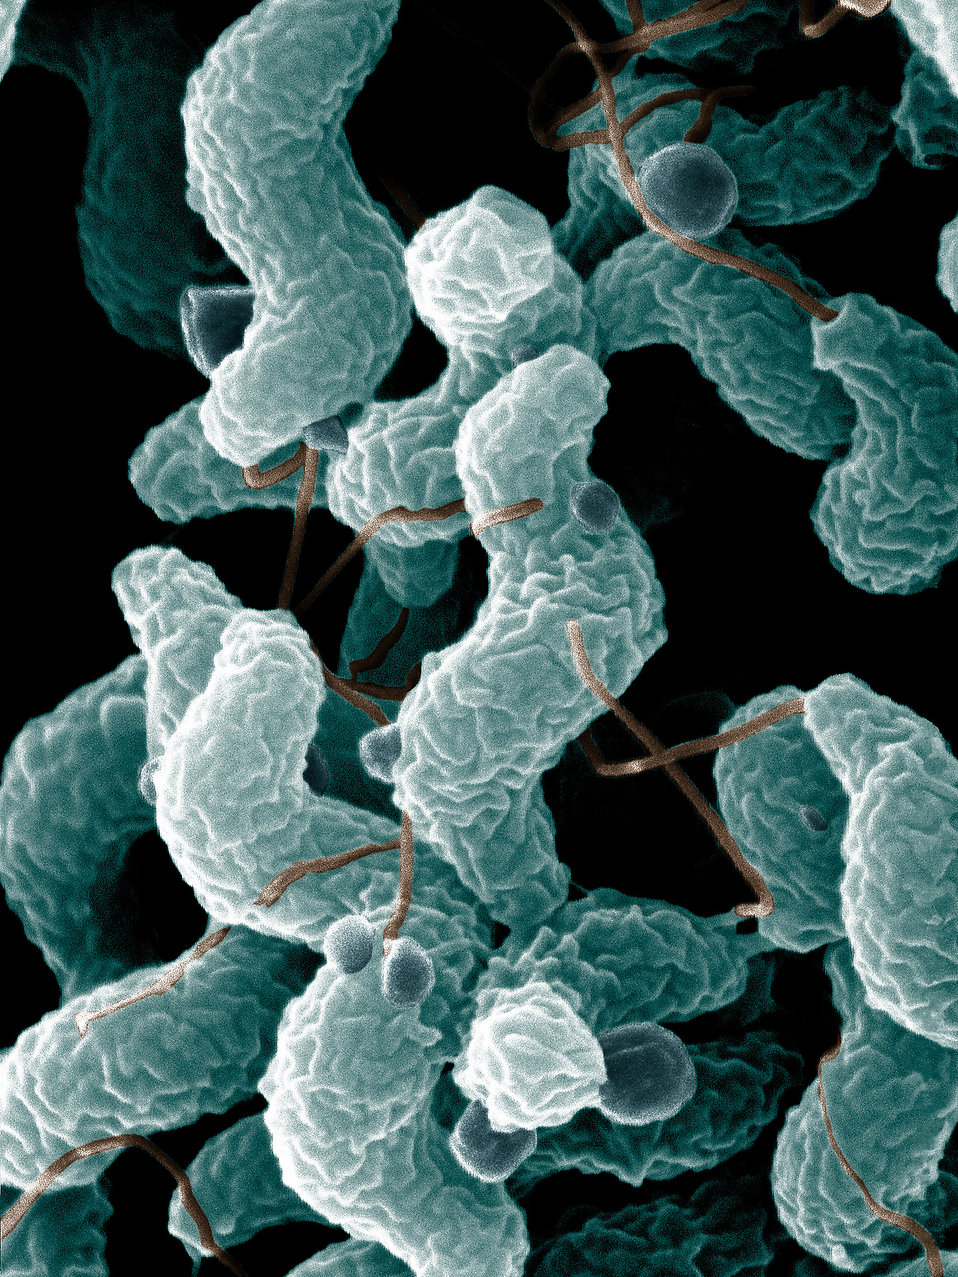 10072-campylobacter-bacteria-as-seen-from-an-electron-microscope-pv.jpg